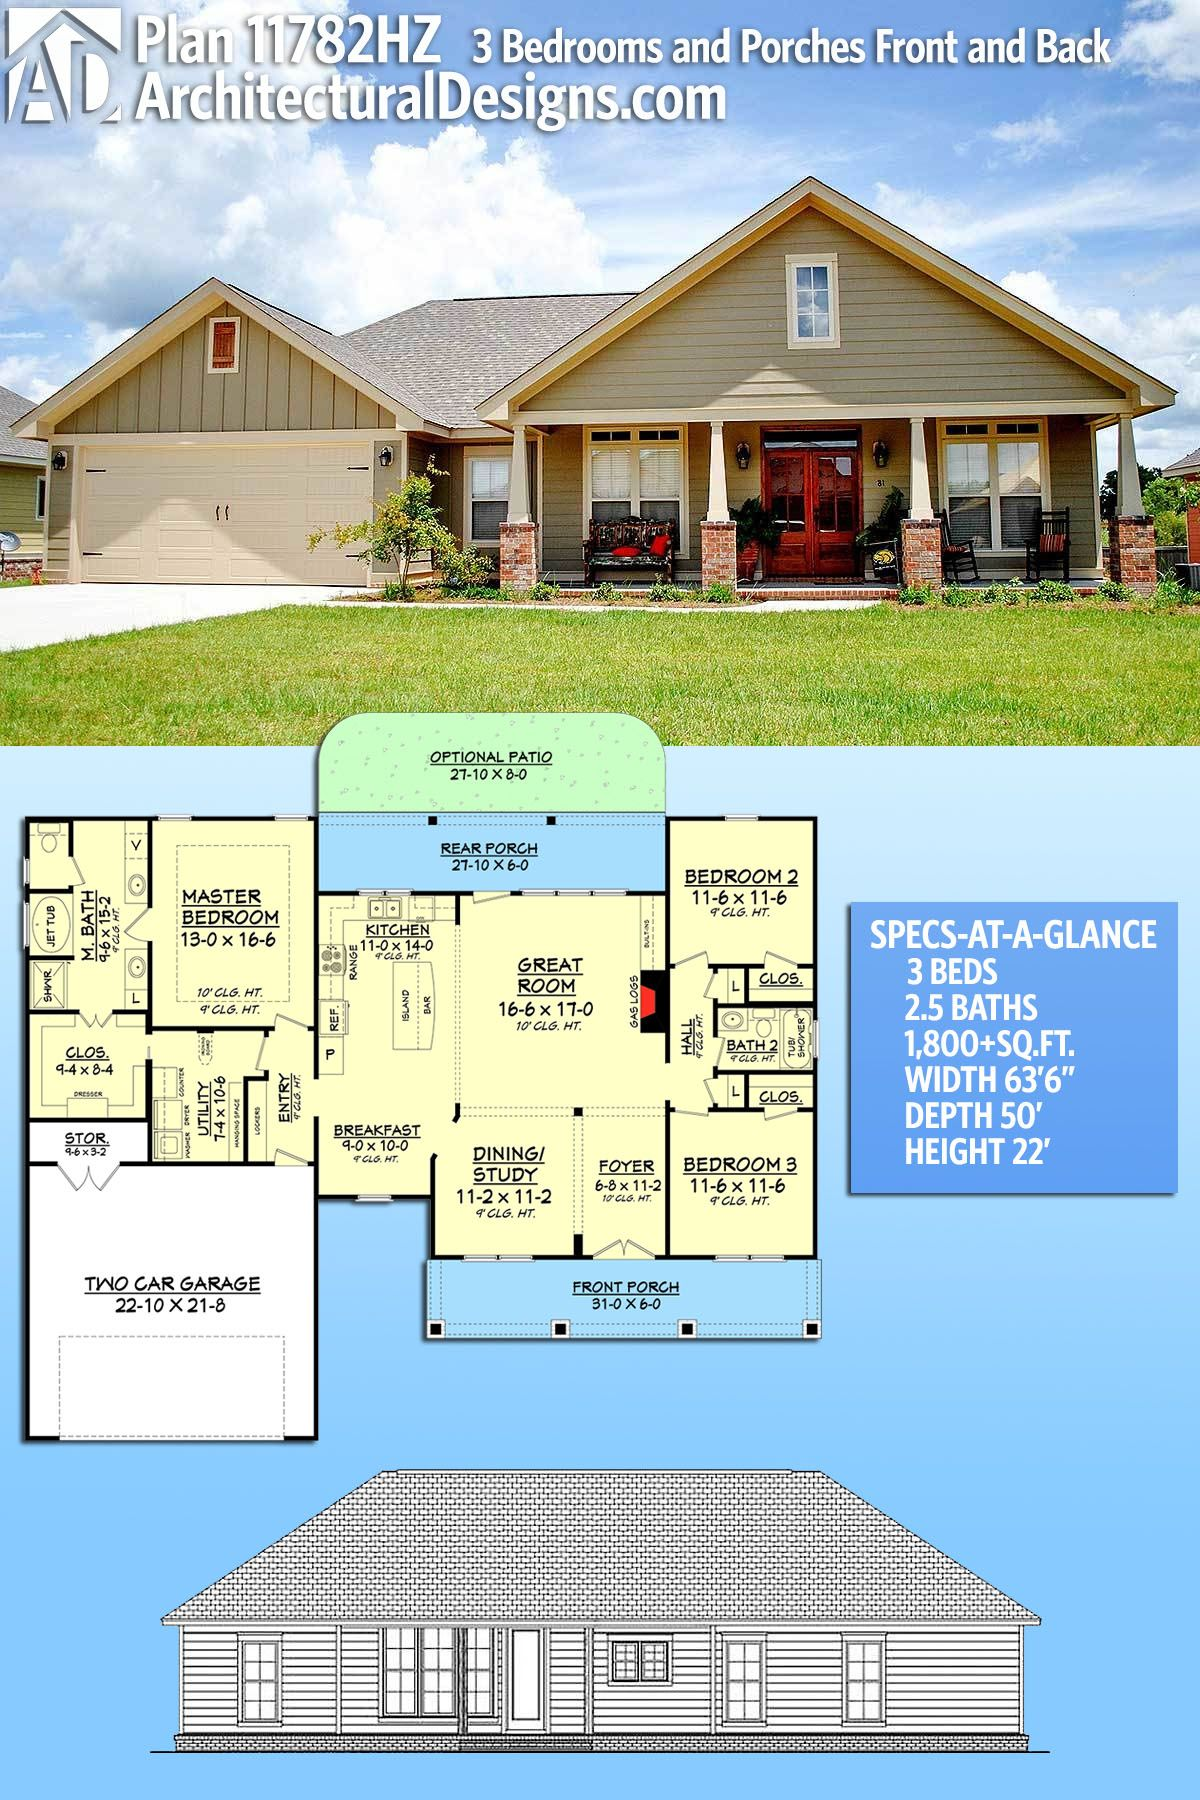 Architectural Designs House Plan 11782HZ comes to